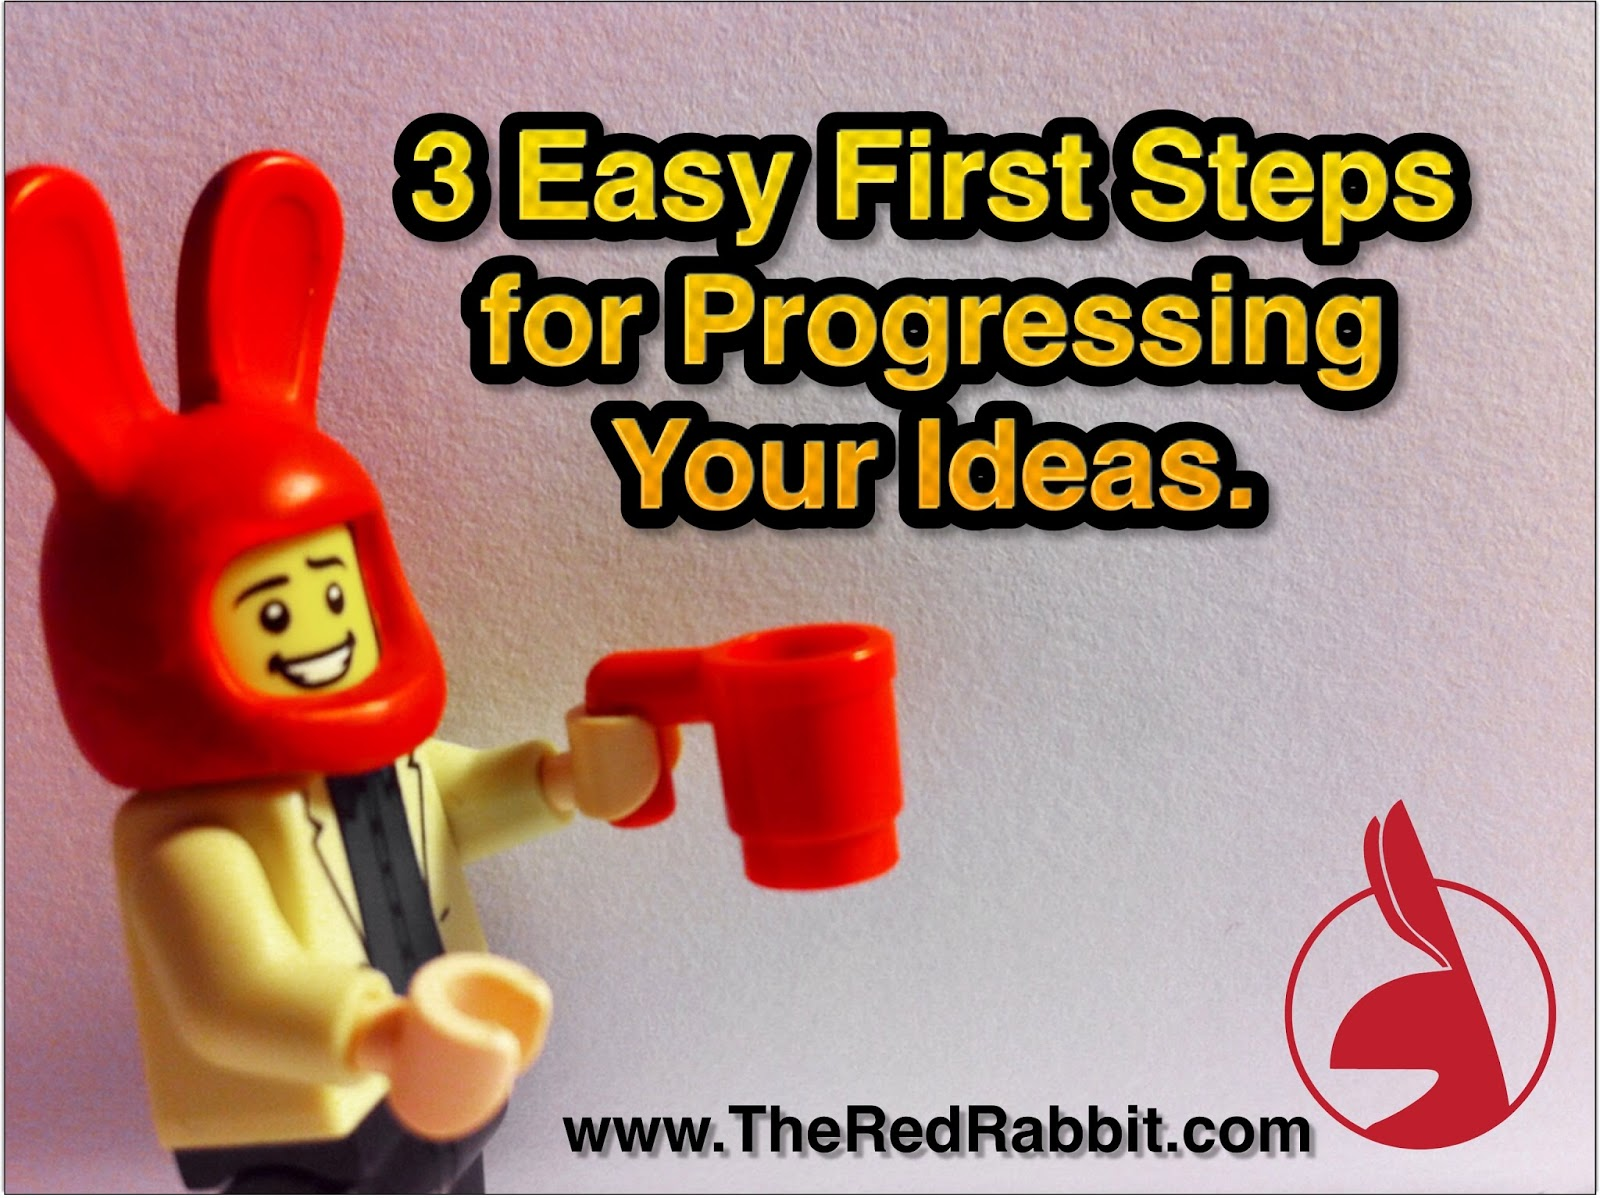 The Red Rabbit Studio: Helping Entrepreneurs